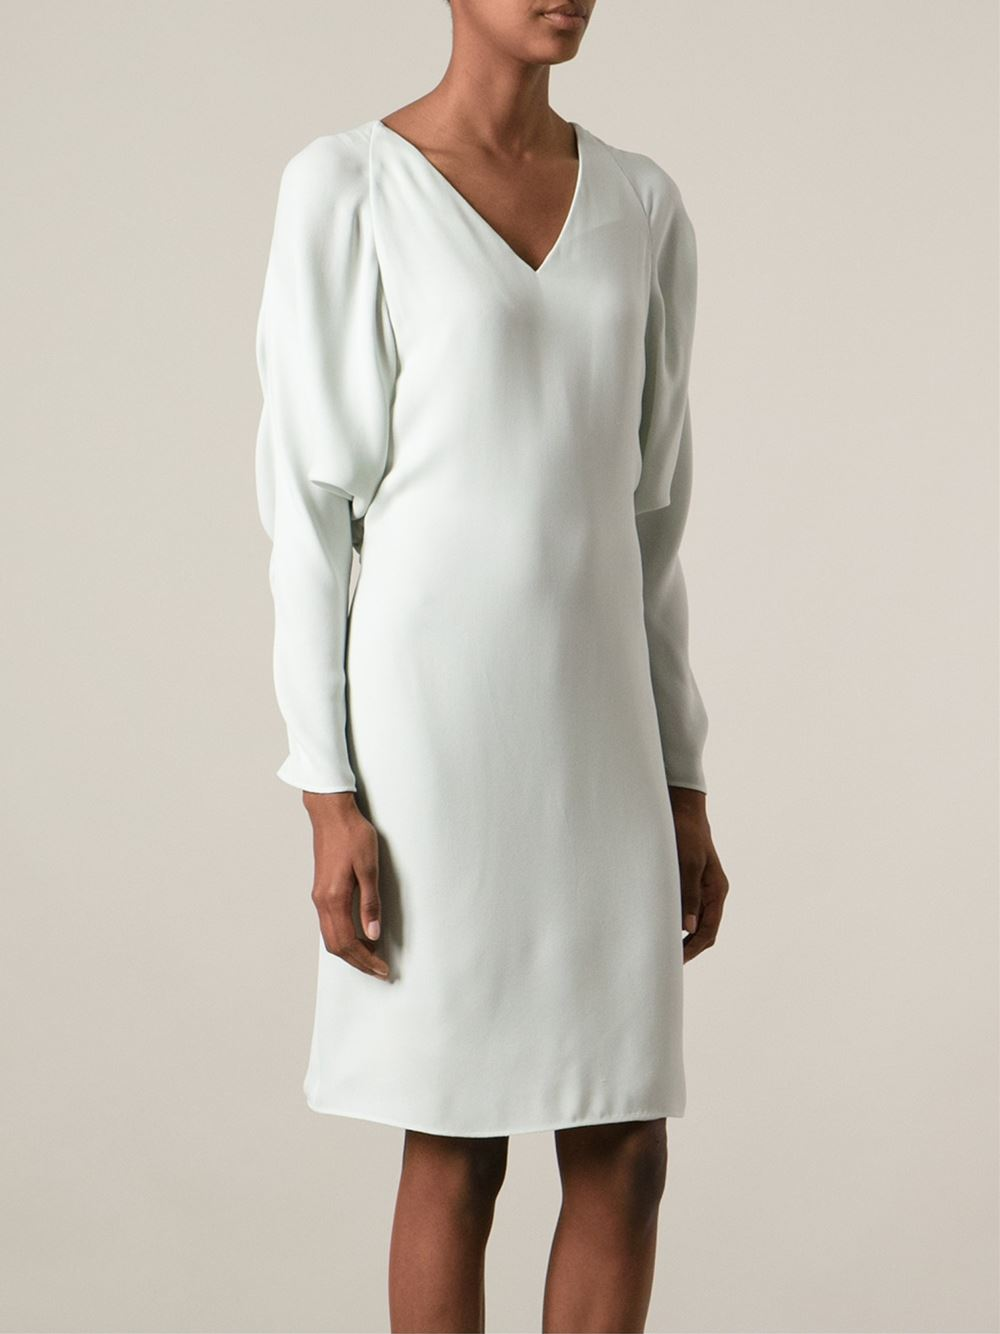 Chloé V-neck Dress - Anita Hass - Farfetch.com